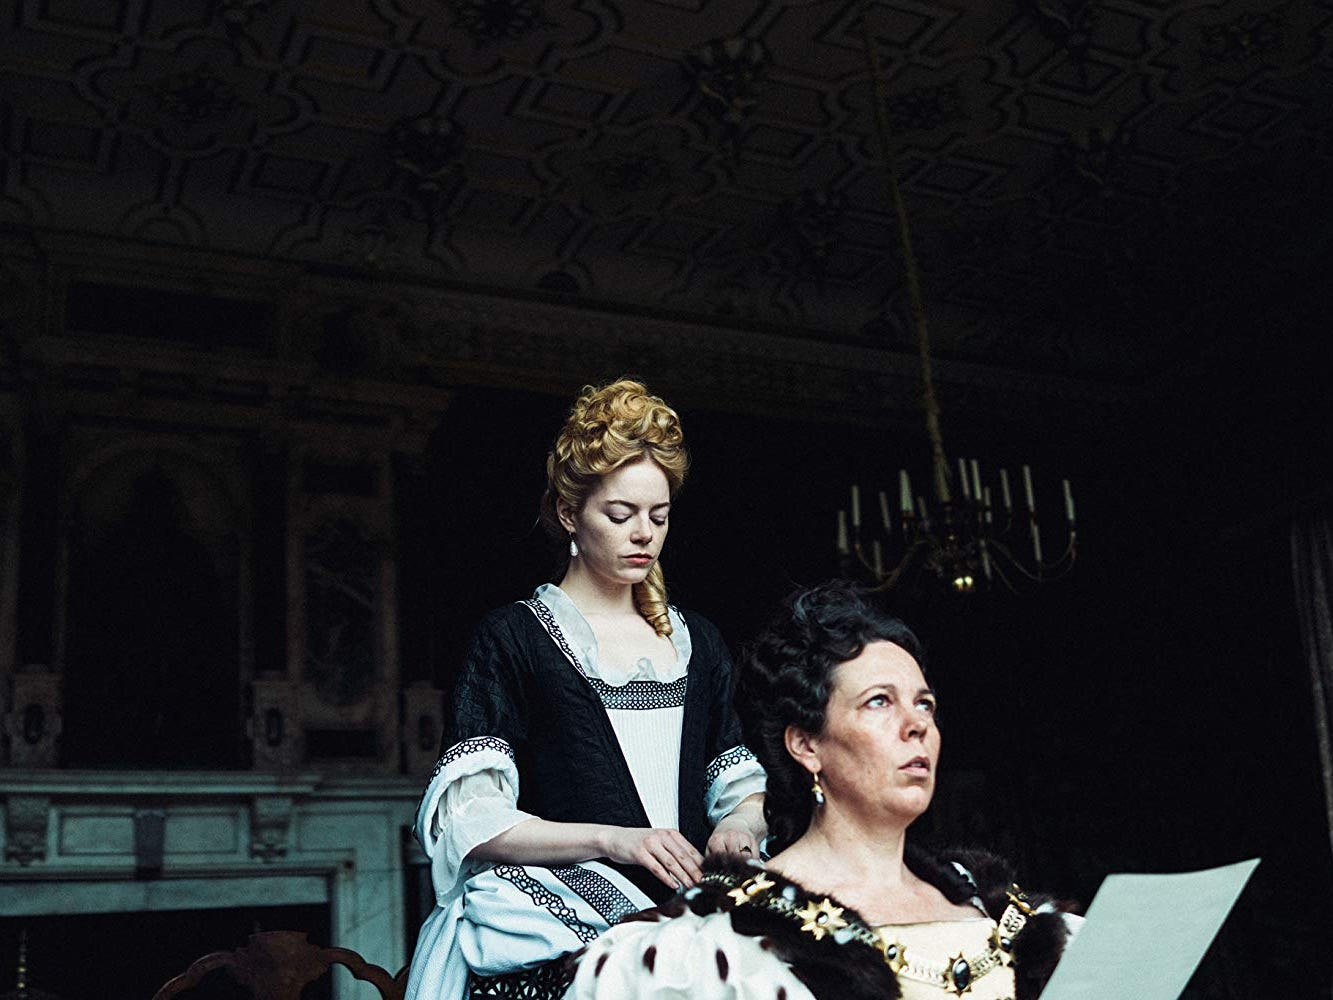 Reviews: 'The Favourite,' 'Mary Queen of Scots' take royally different paths